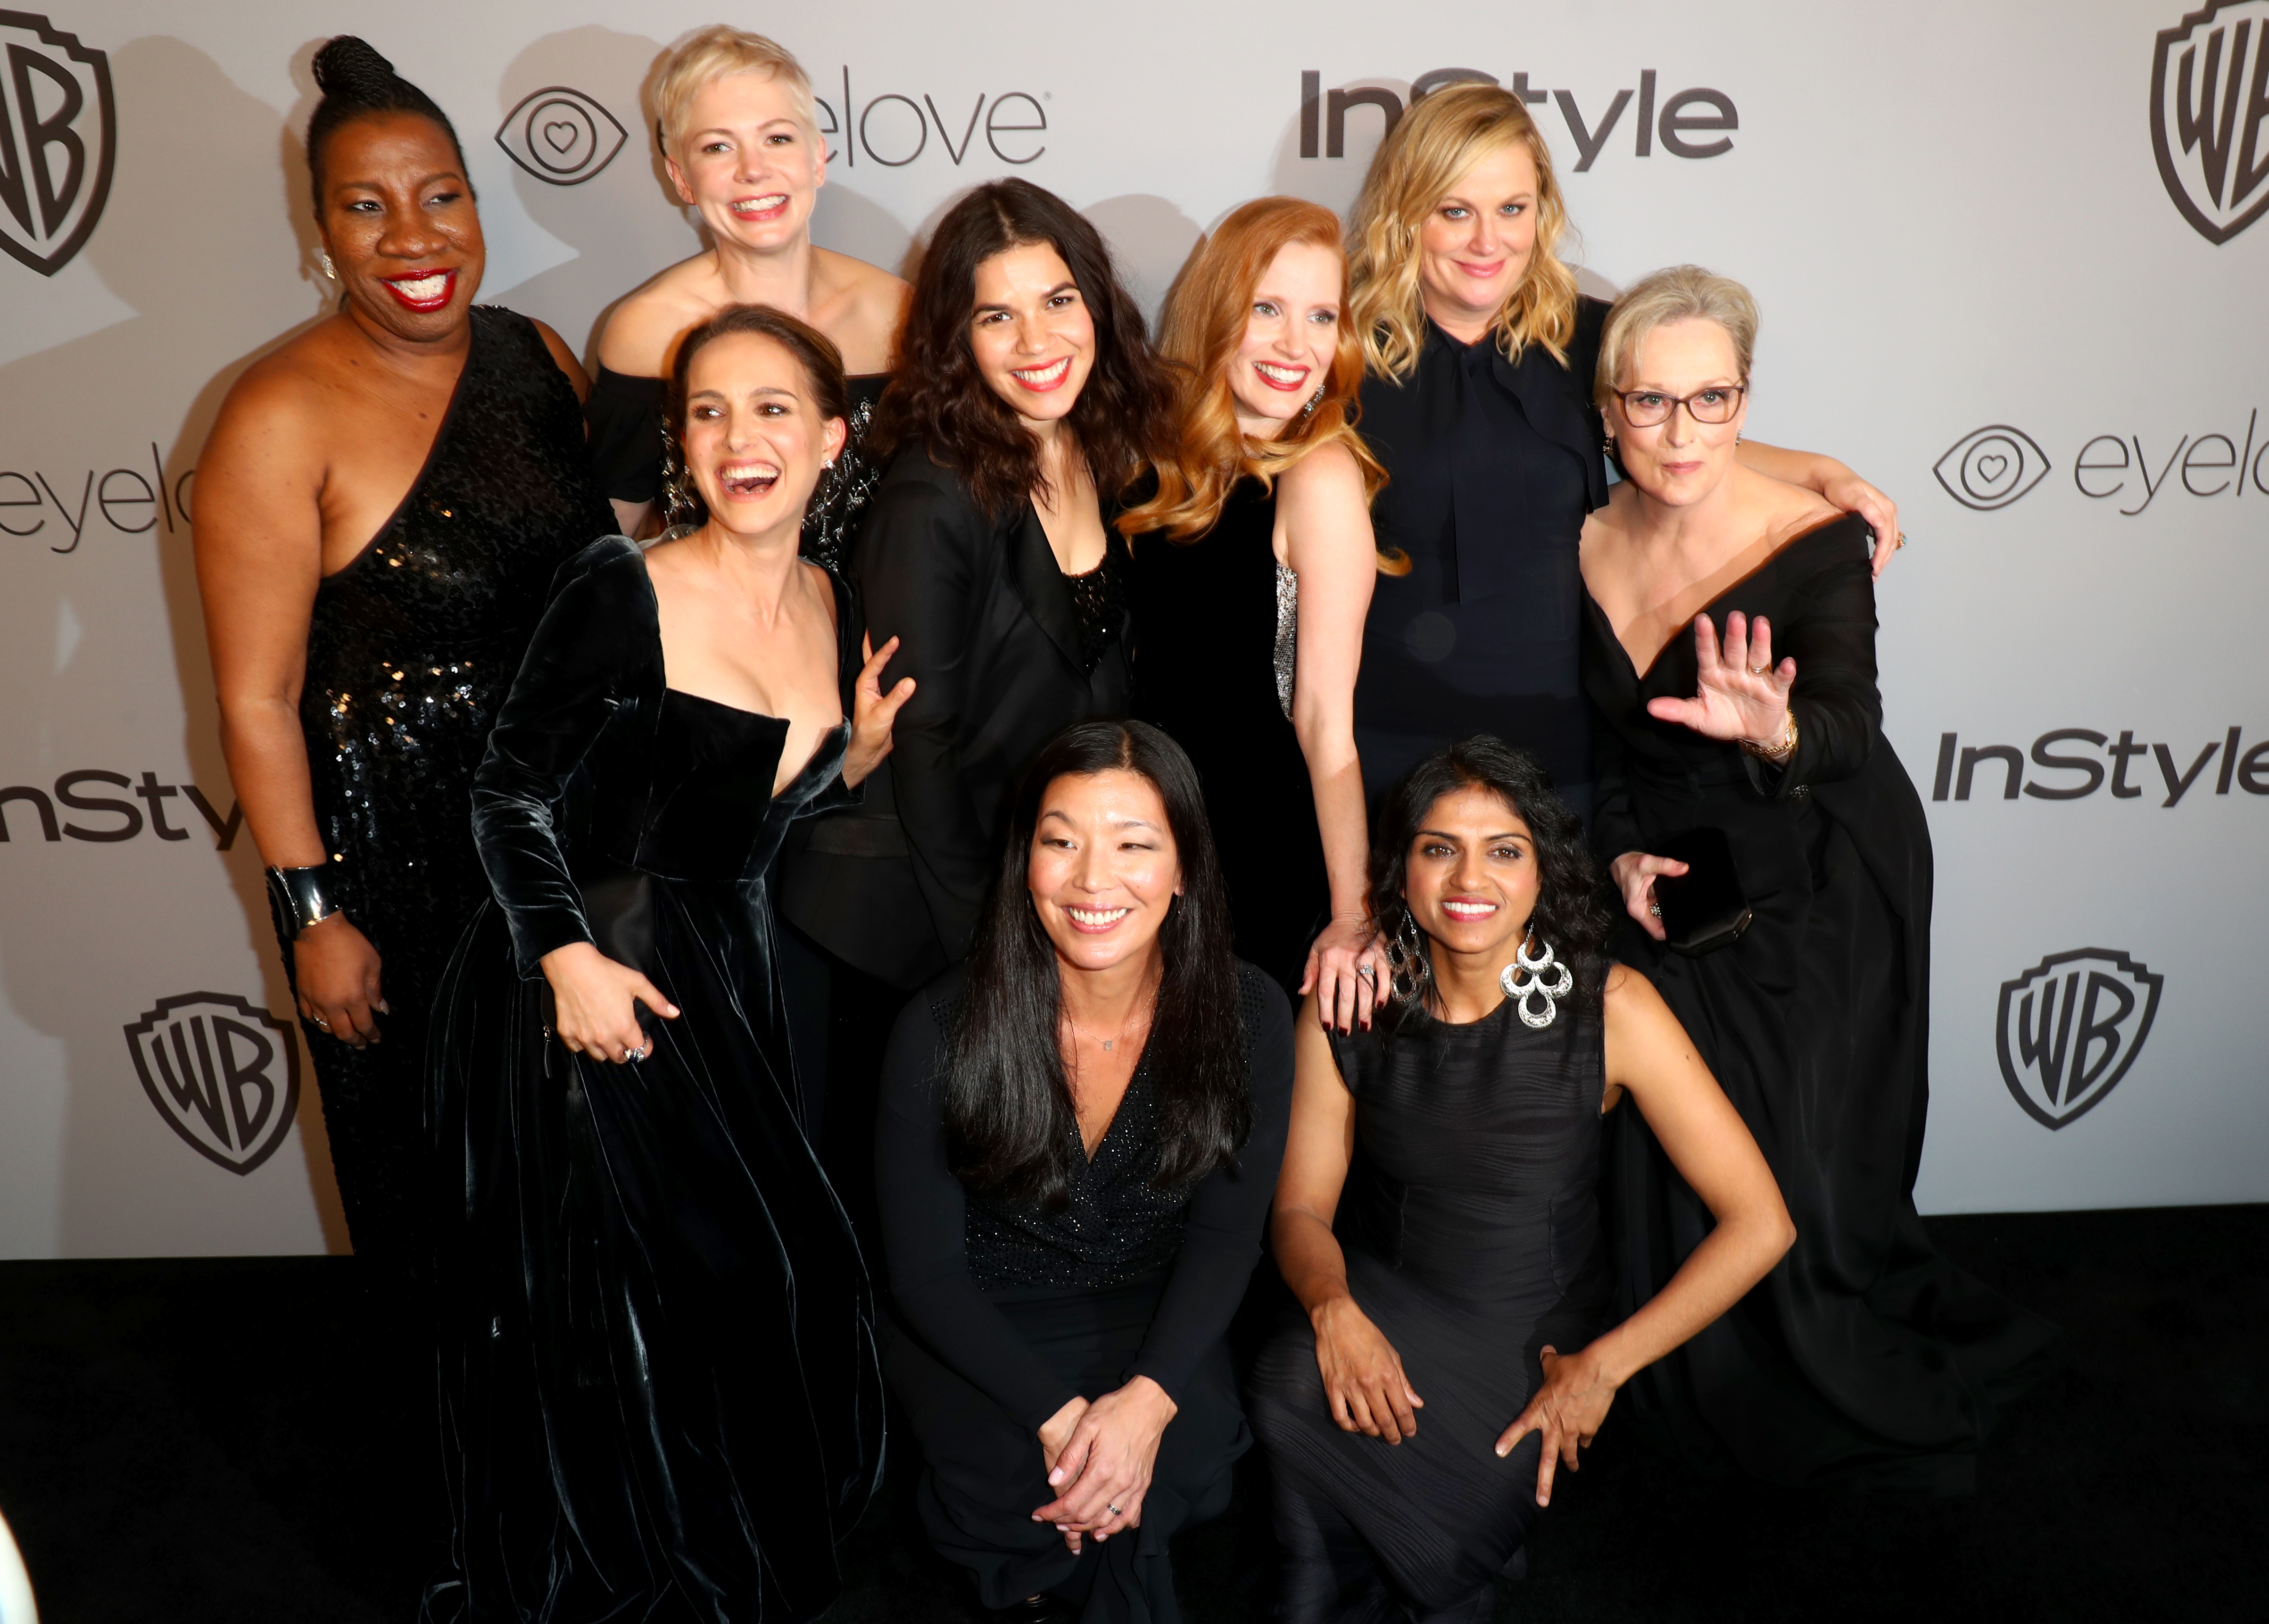 The women stand in a huddle, smiling at the camera, all wearing black.